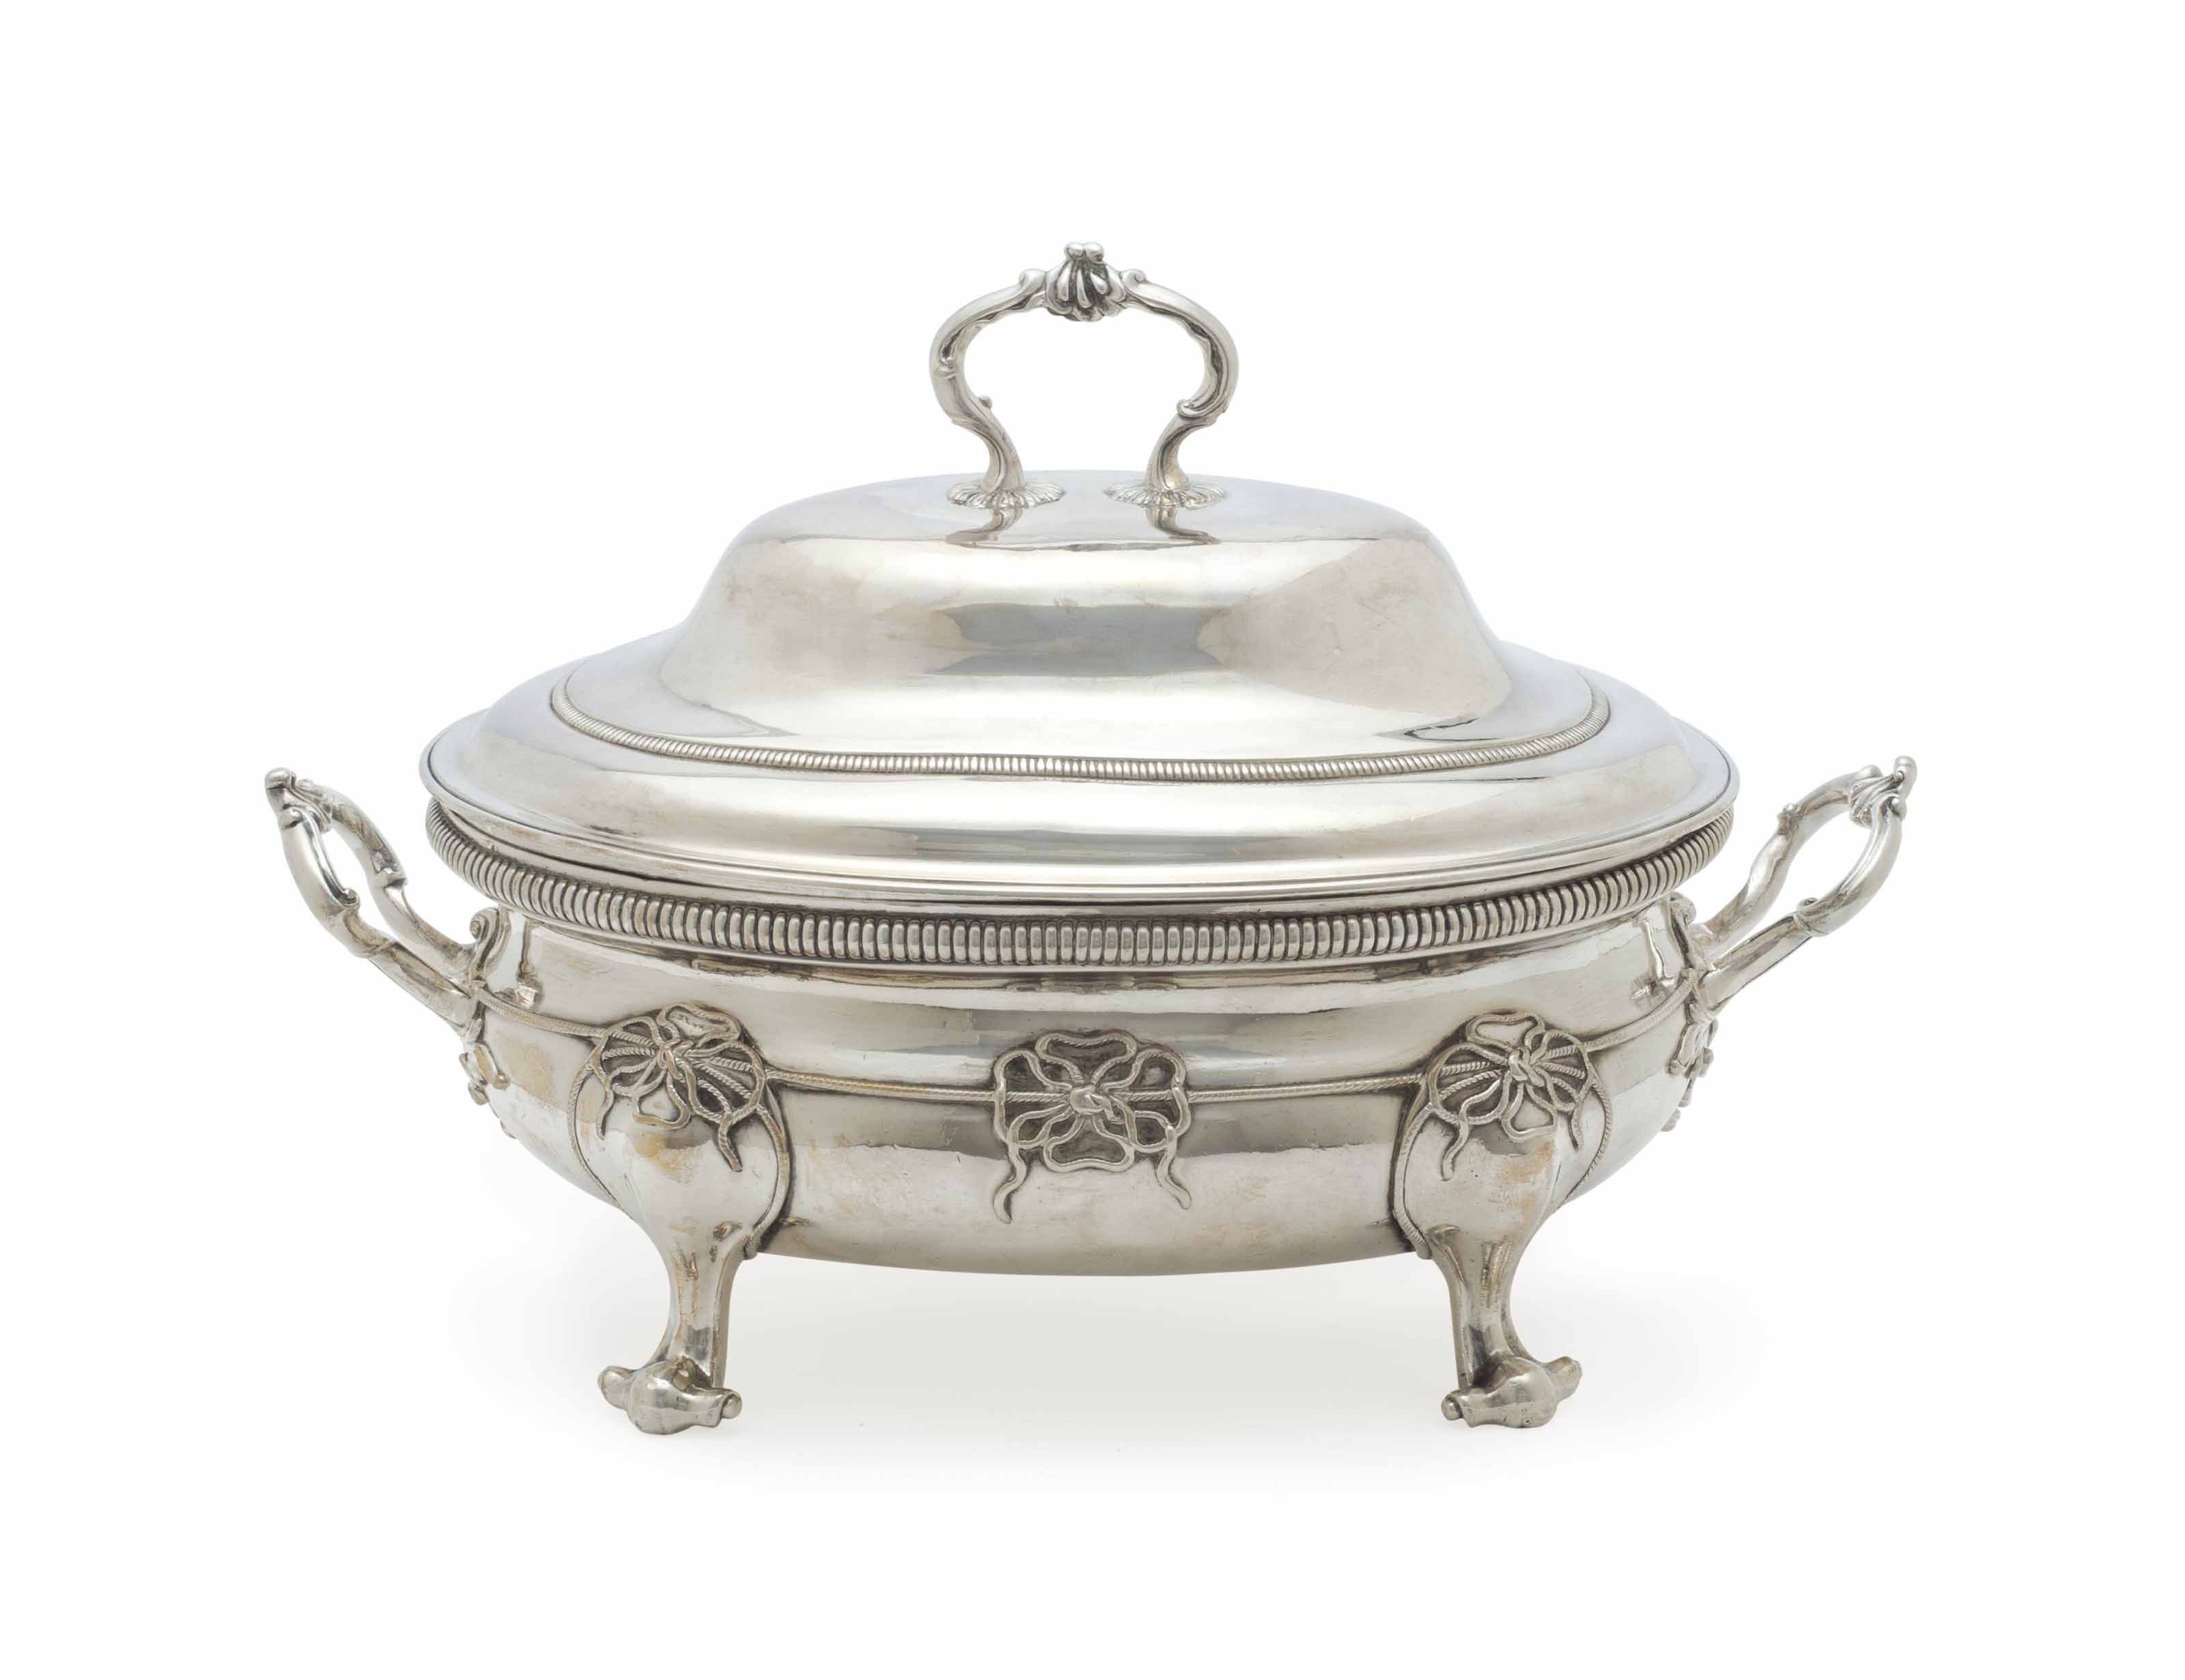 A GEORGE III SILVER SOUP TUREEN AND COVER